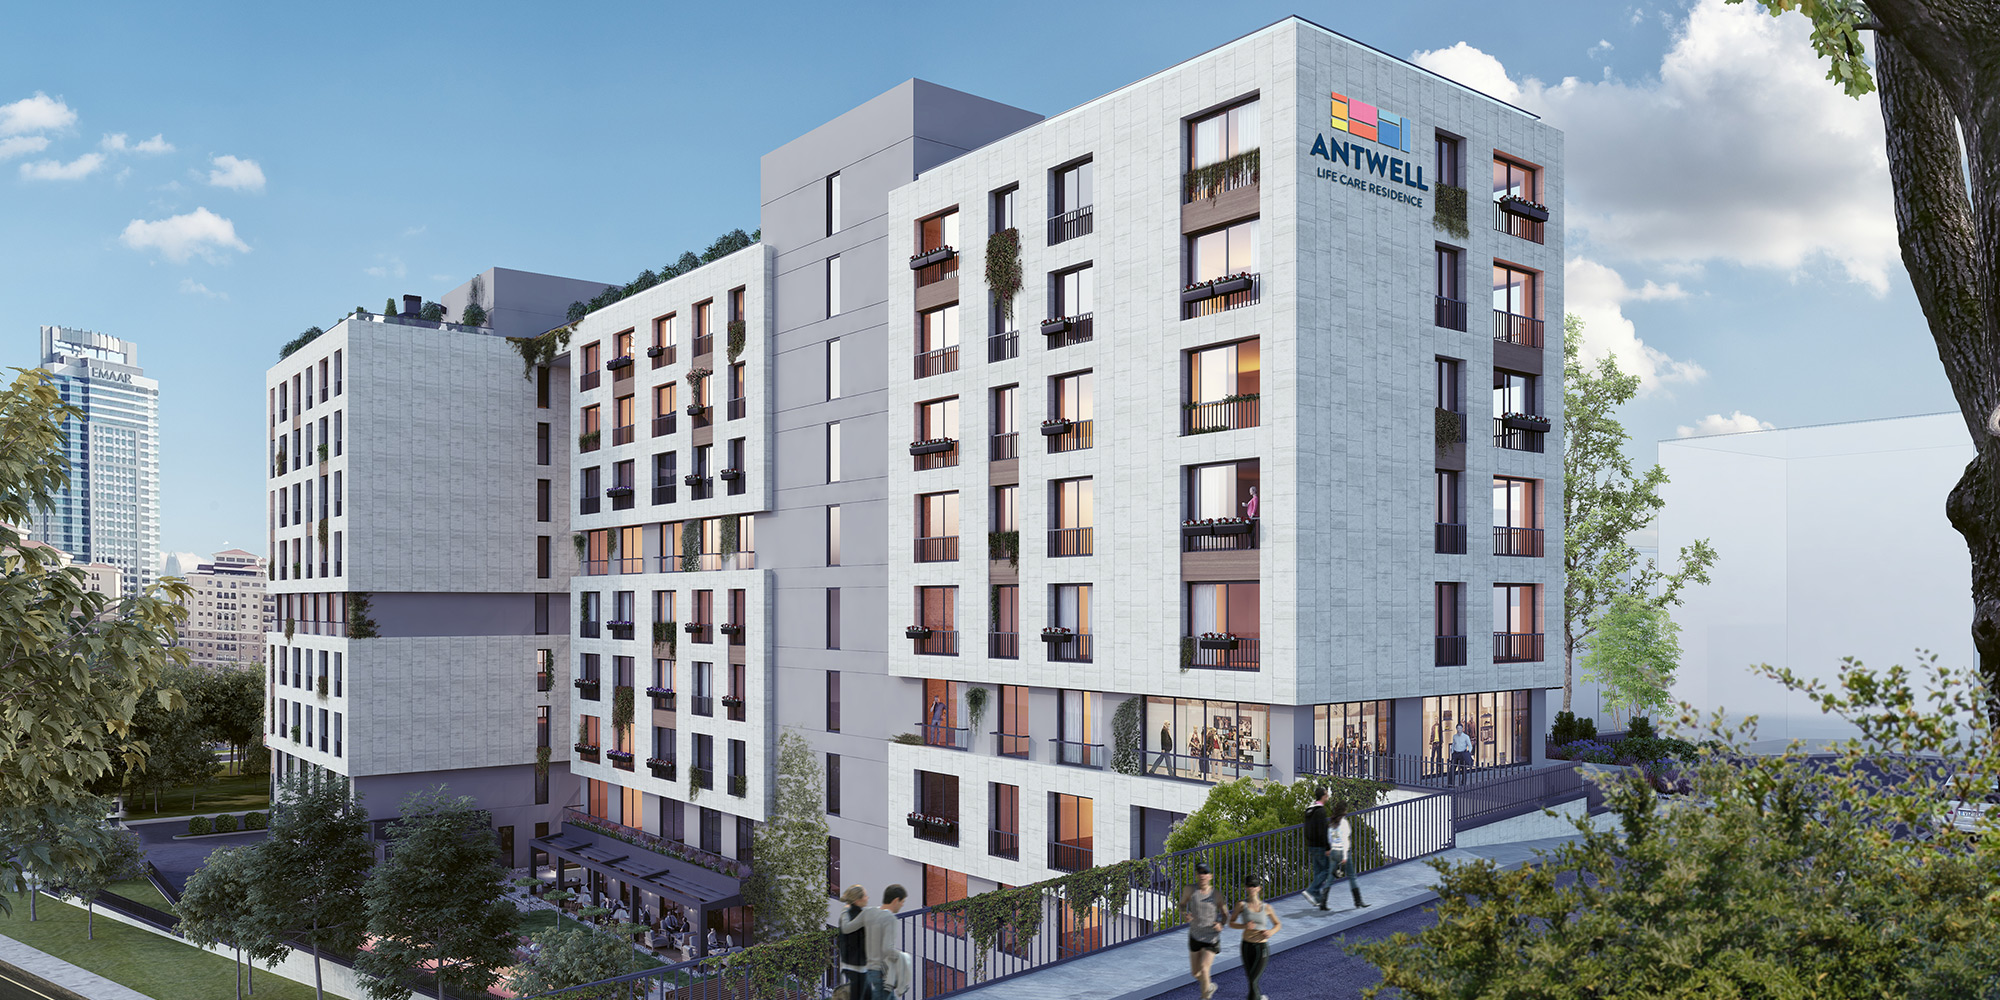 Turkey's First Health Residence of Antwell Life Care will use Aironn Devices